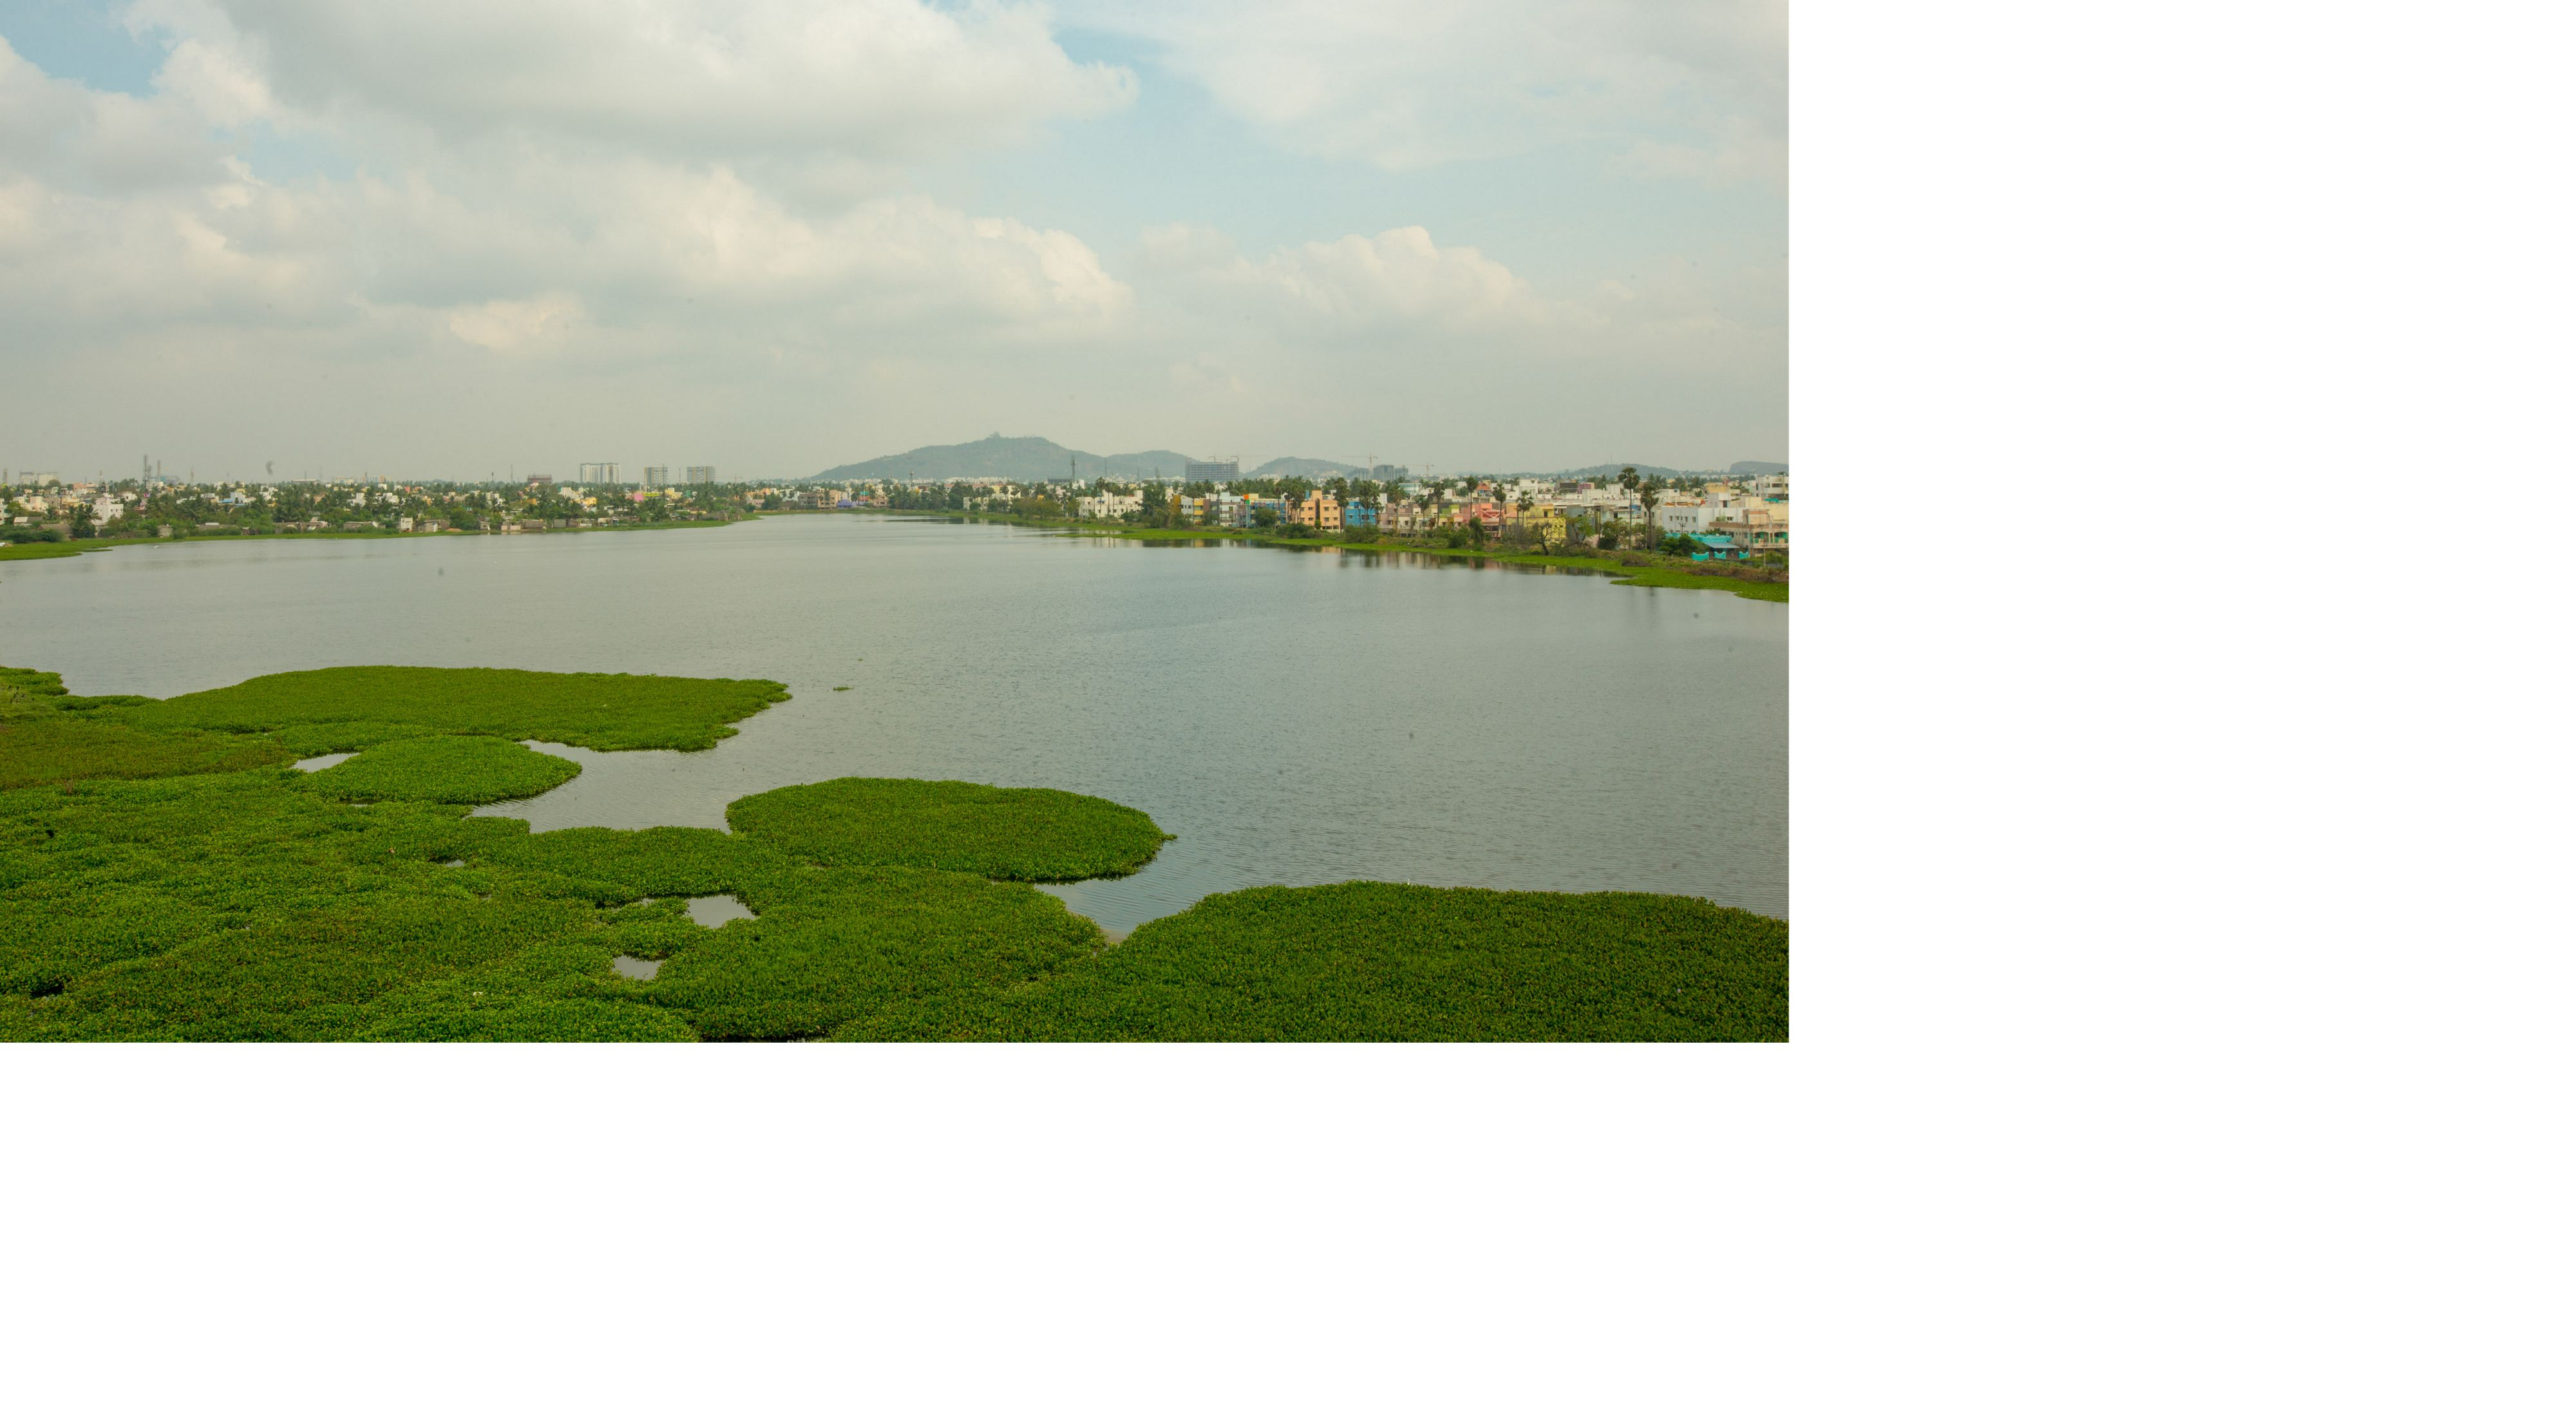 Lake Sembakkam in Chennai, India